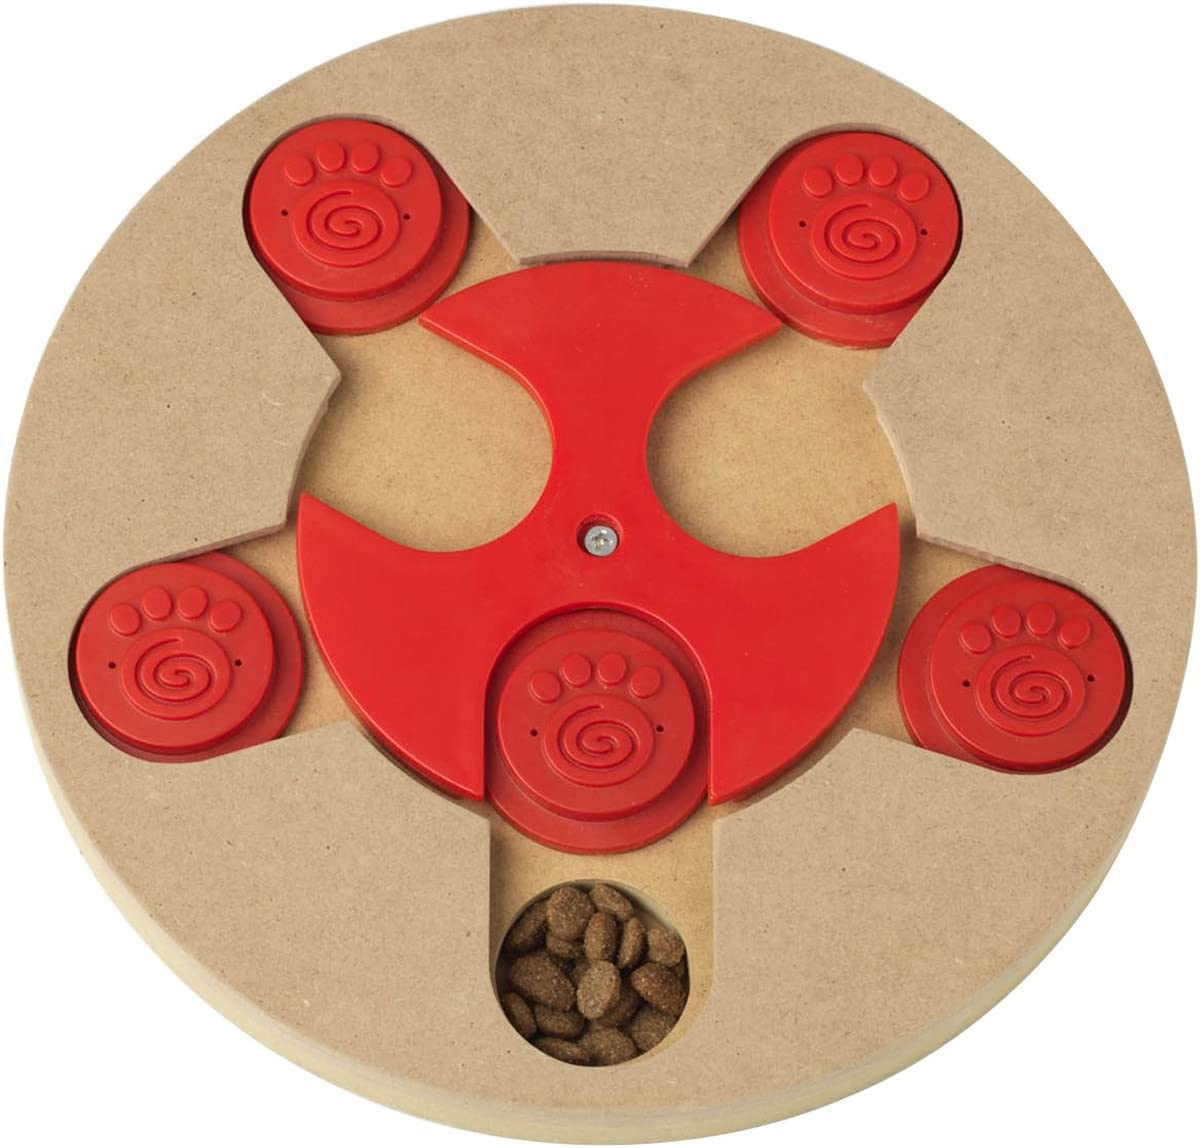 PetRageous 13006 Thinkrageous Interactive Advanced Level Puzzle Piece Pet Toy Measures 9.84-Inch for Dogs and Cats and Ages, Red